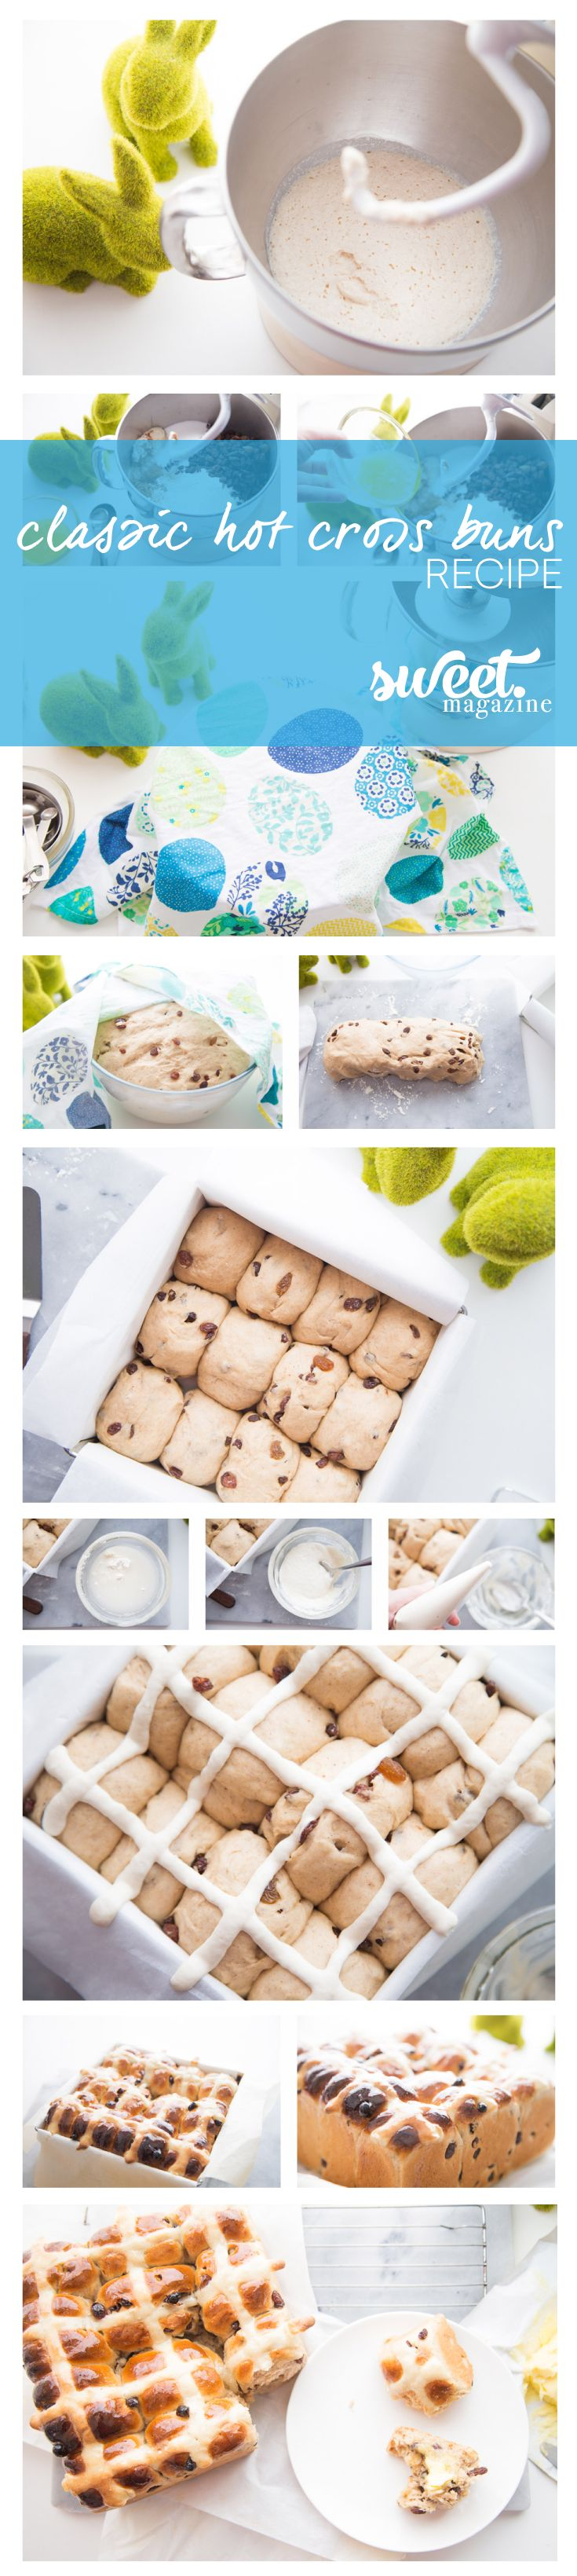 Classic Hot Cross Buns from Sweet Magazine - you really need to try these!